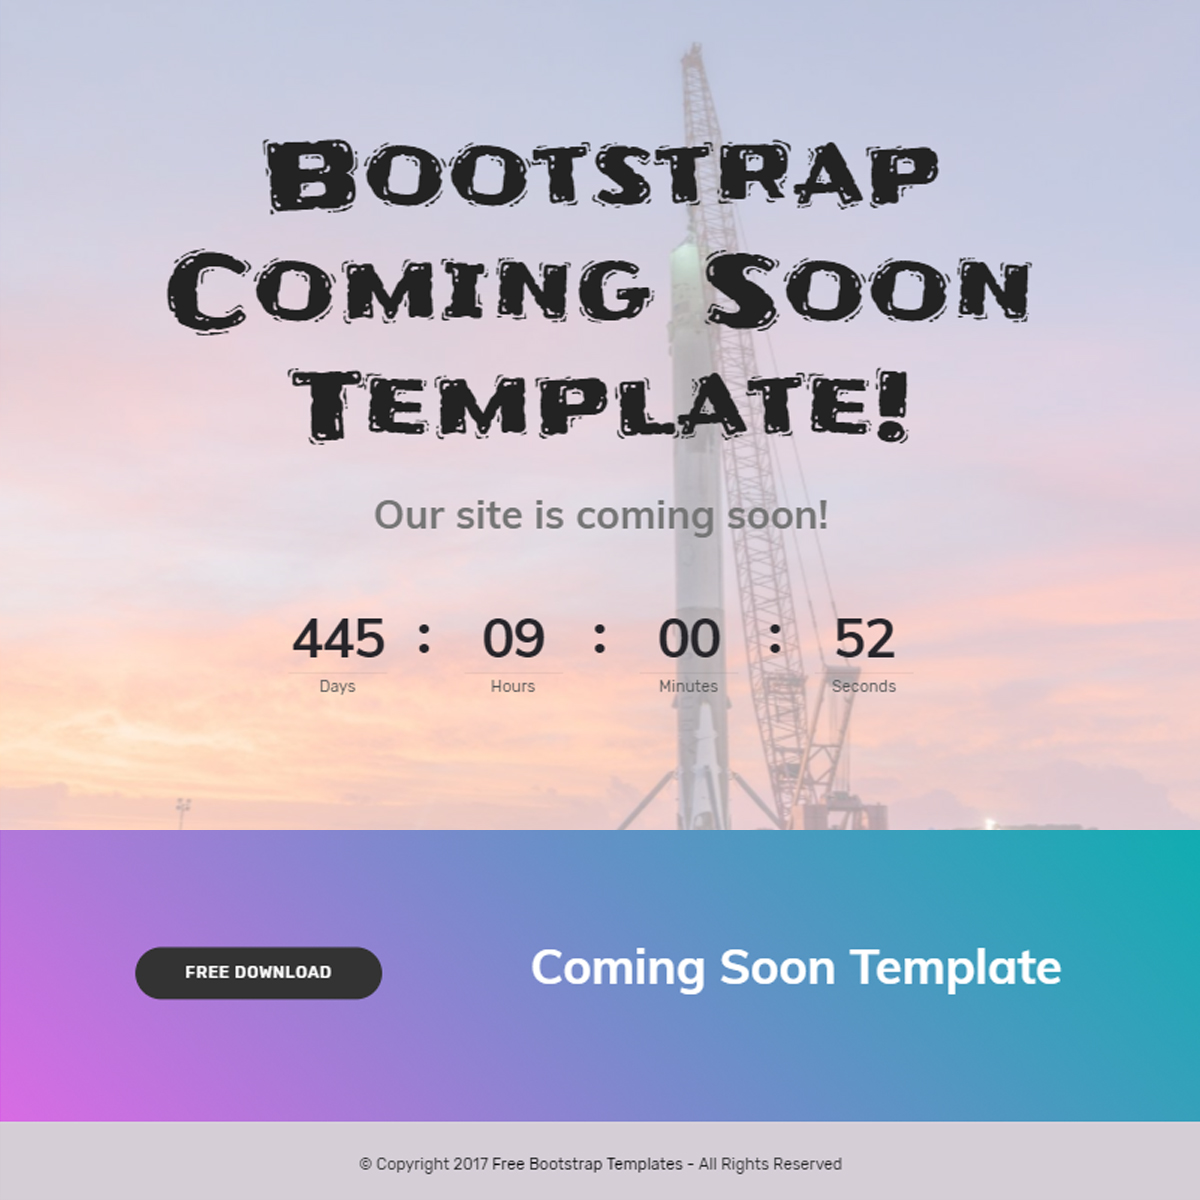 HTML5 Bootstrap Coming Soon Templates